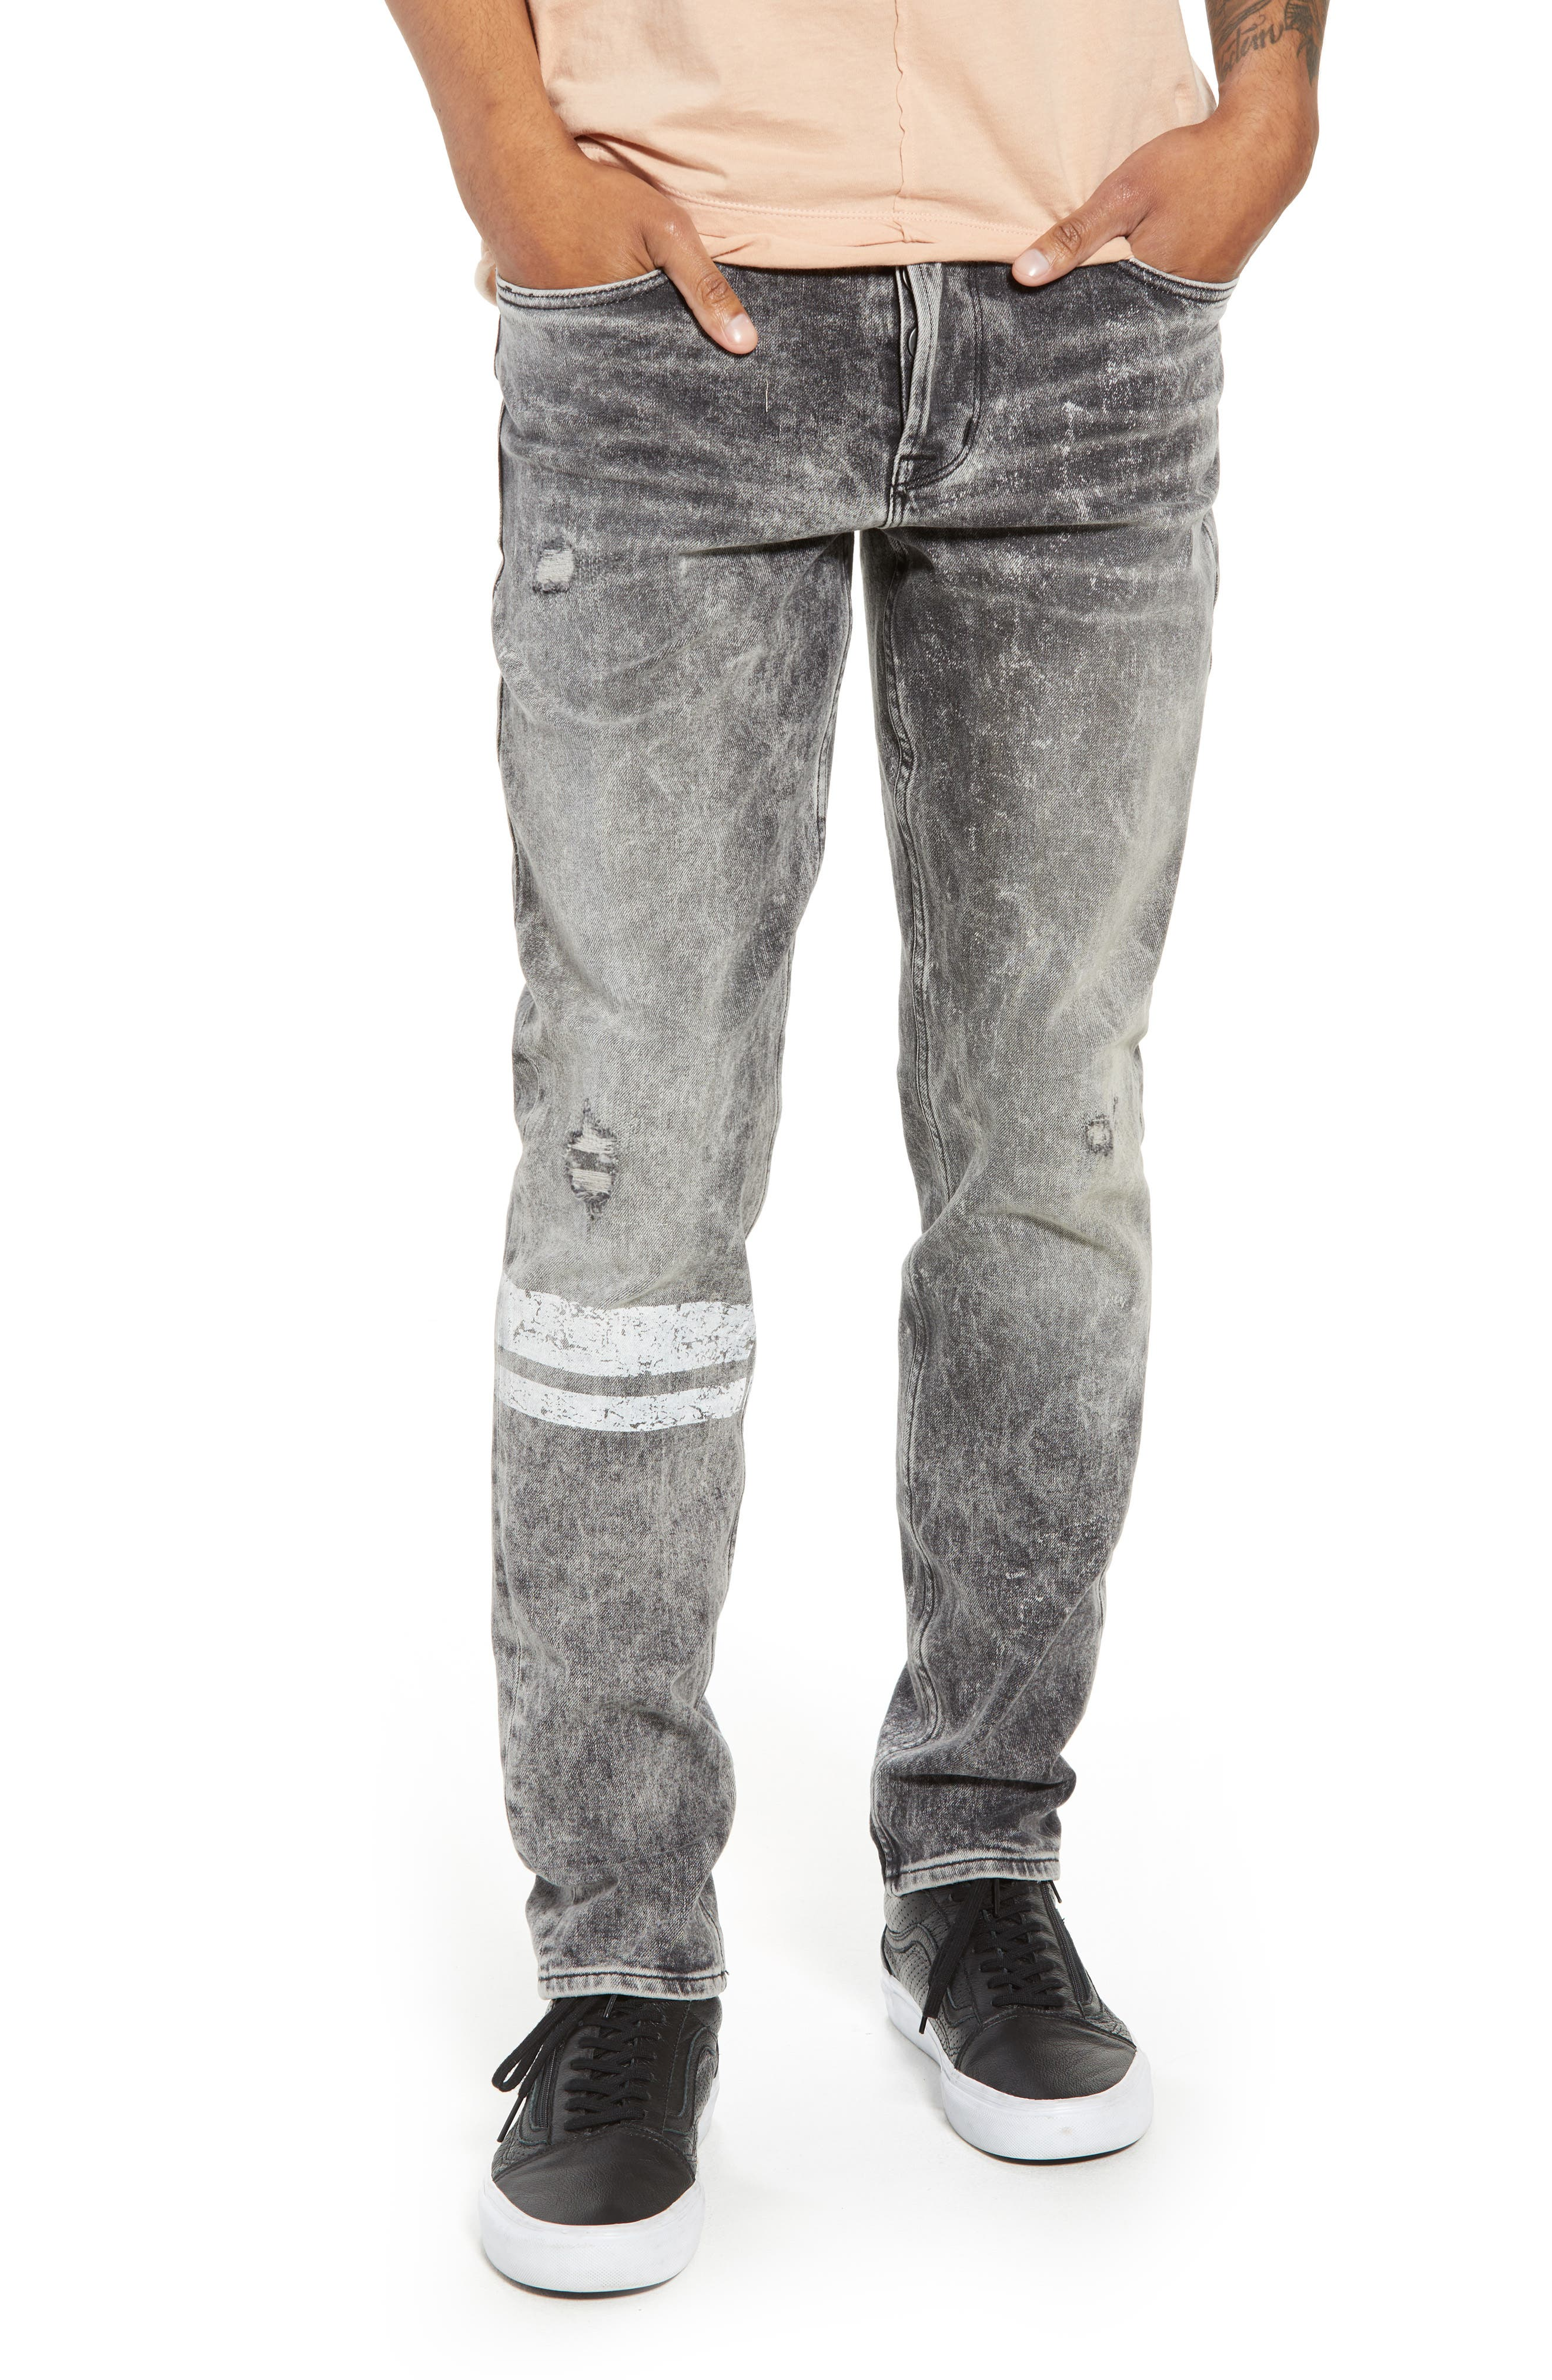 Sartor Slouchy Skinny Fit Jeans,                         Main,                         color, Cut Copy